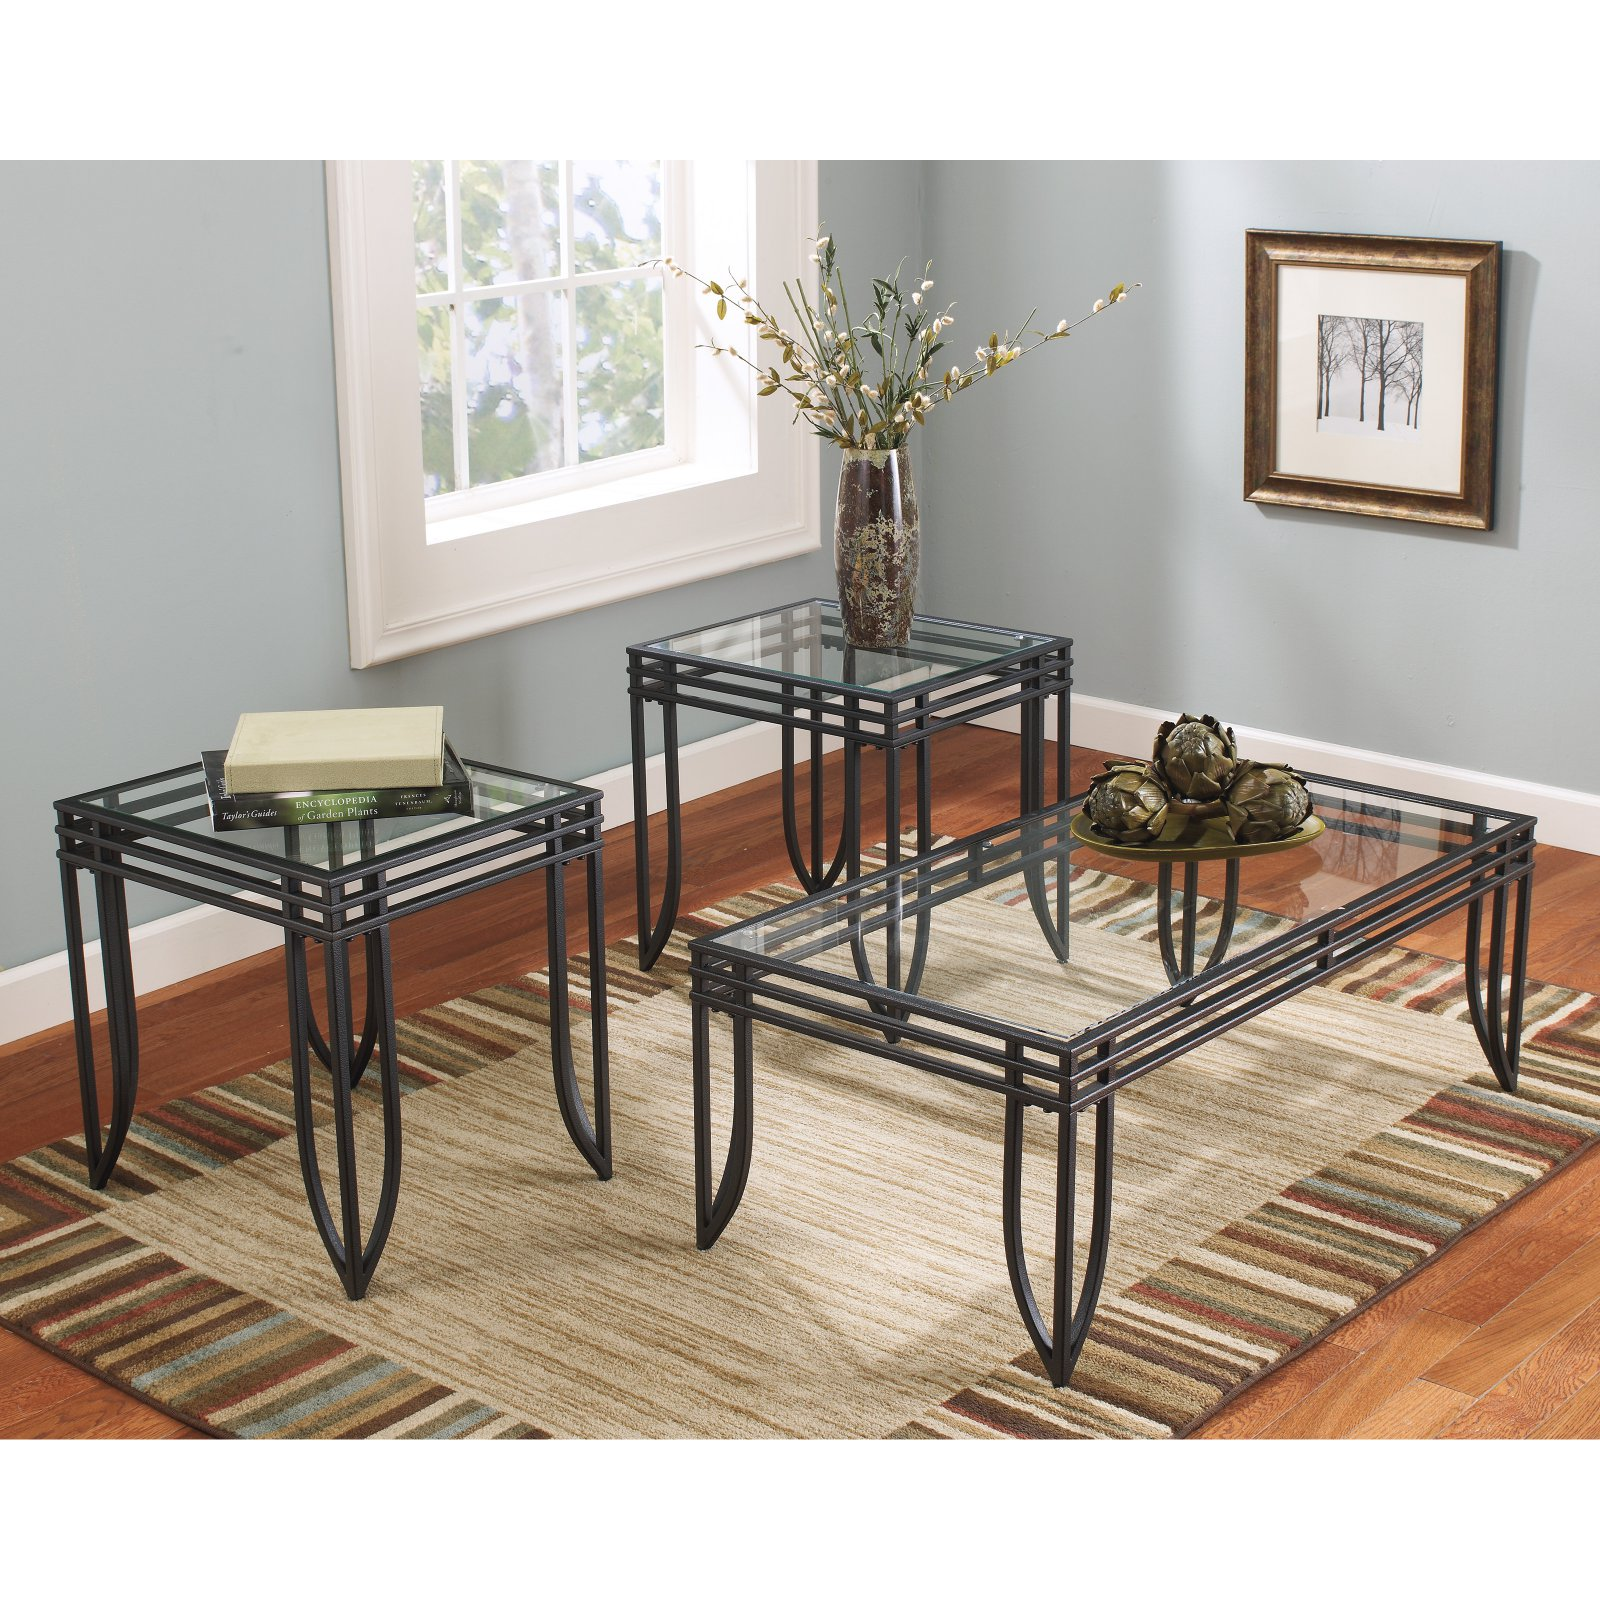 Signature Design by Ashley Exeter 3 Piece Coffee Table Set  sc 1 st  Walmart & Signature Design by Ashley Exeter 3 Piece Coffee Table Set - Walmart.com